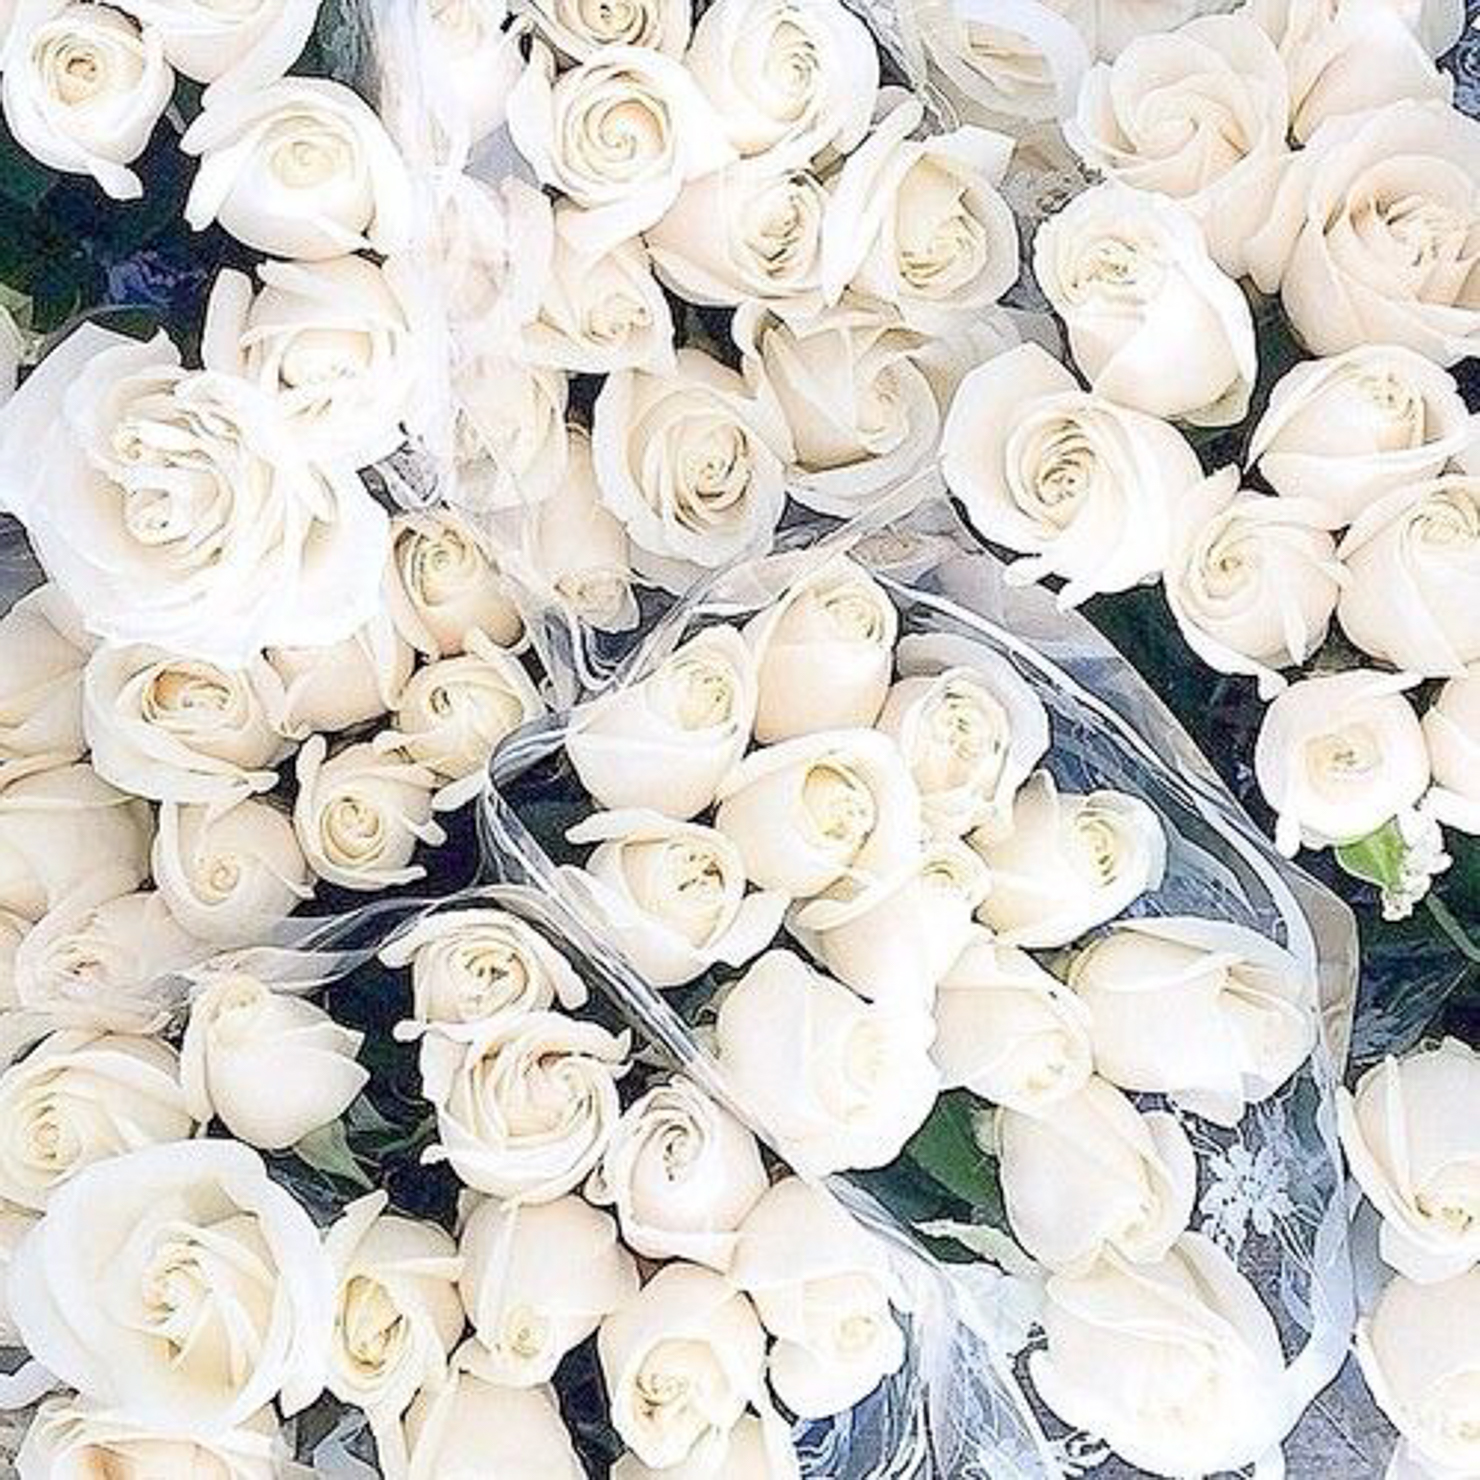 instagram-dozens-of-white-roses